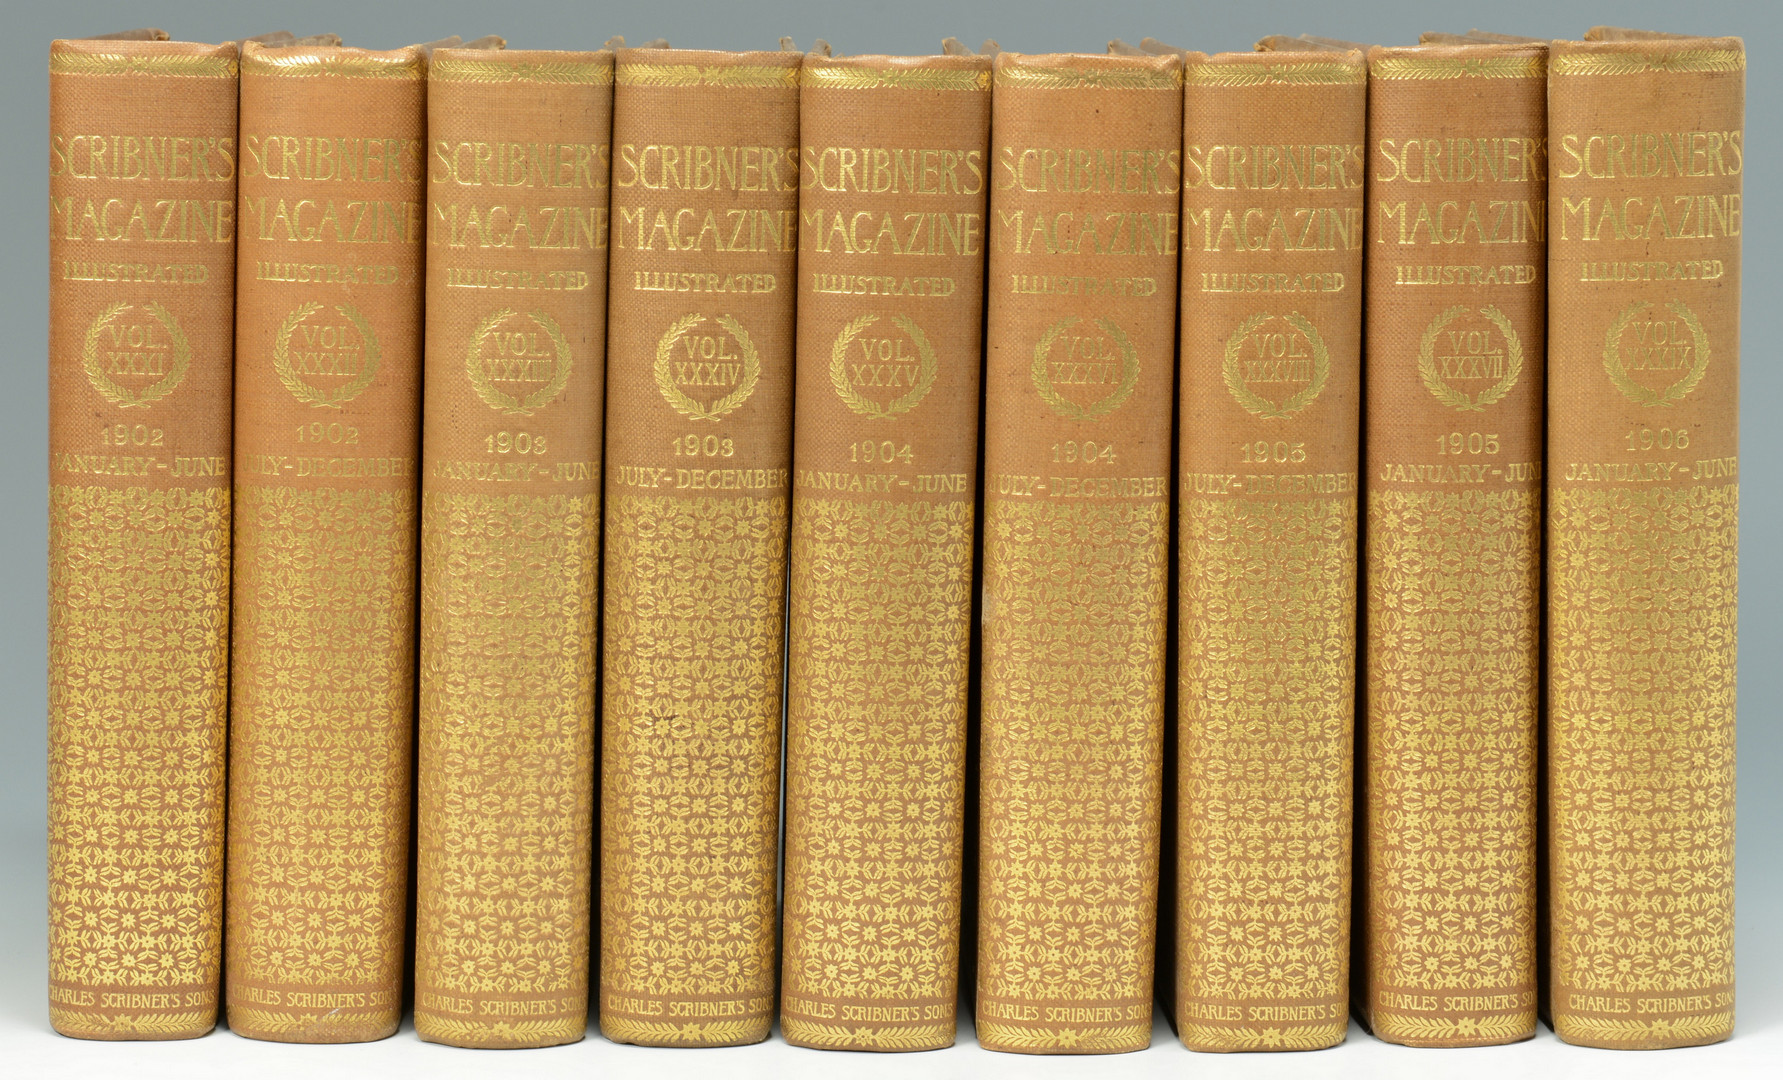 Lot 873: Grouping of Early 20th Century Books, 22 total